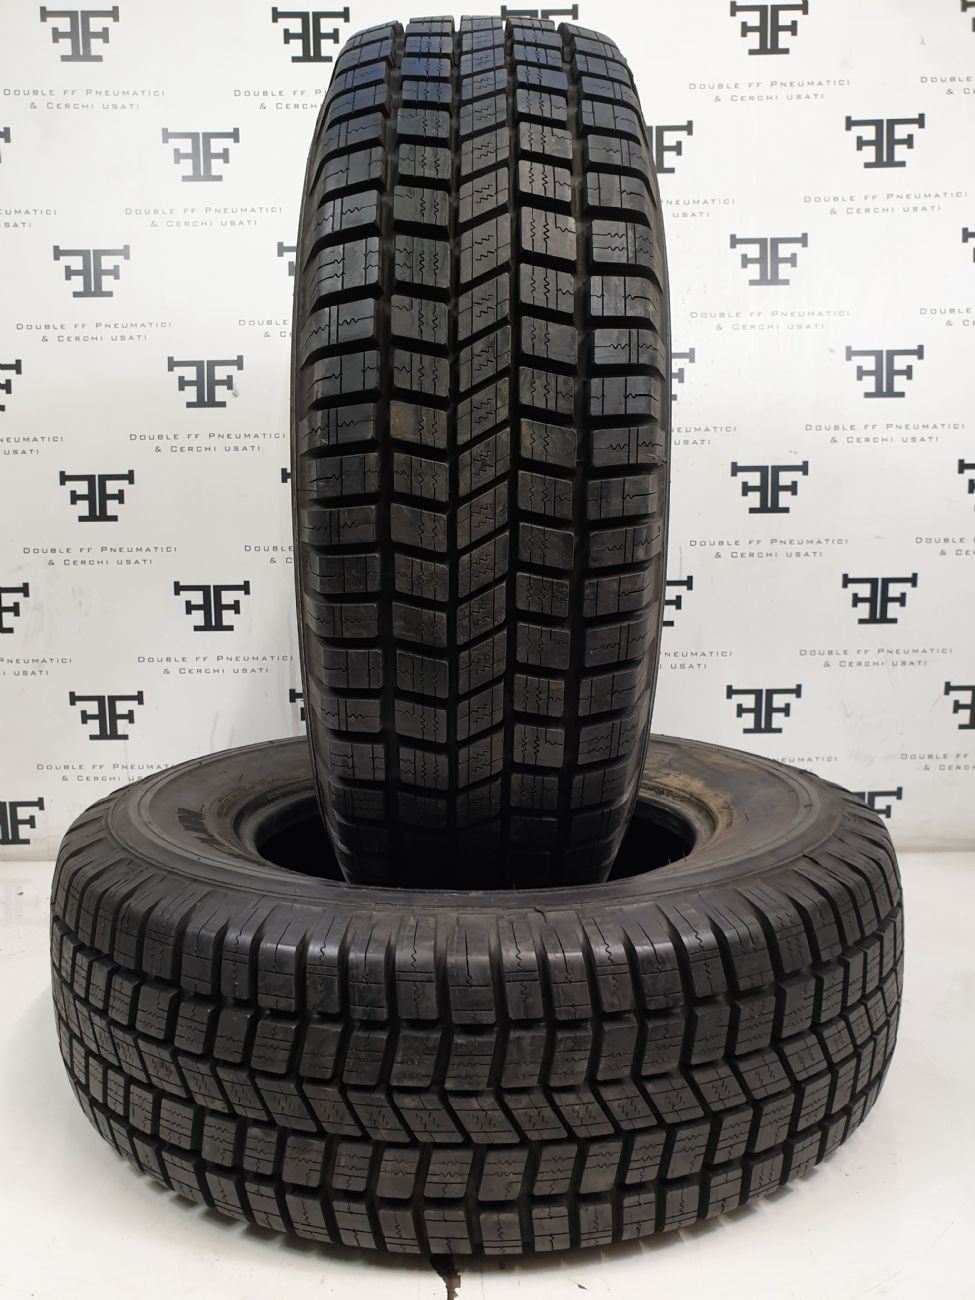 235/70 R16 105 H MICHELIN 4x4 RADIAL X DEMONTE